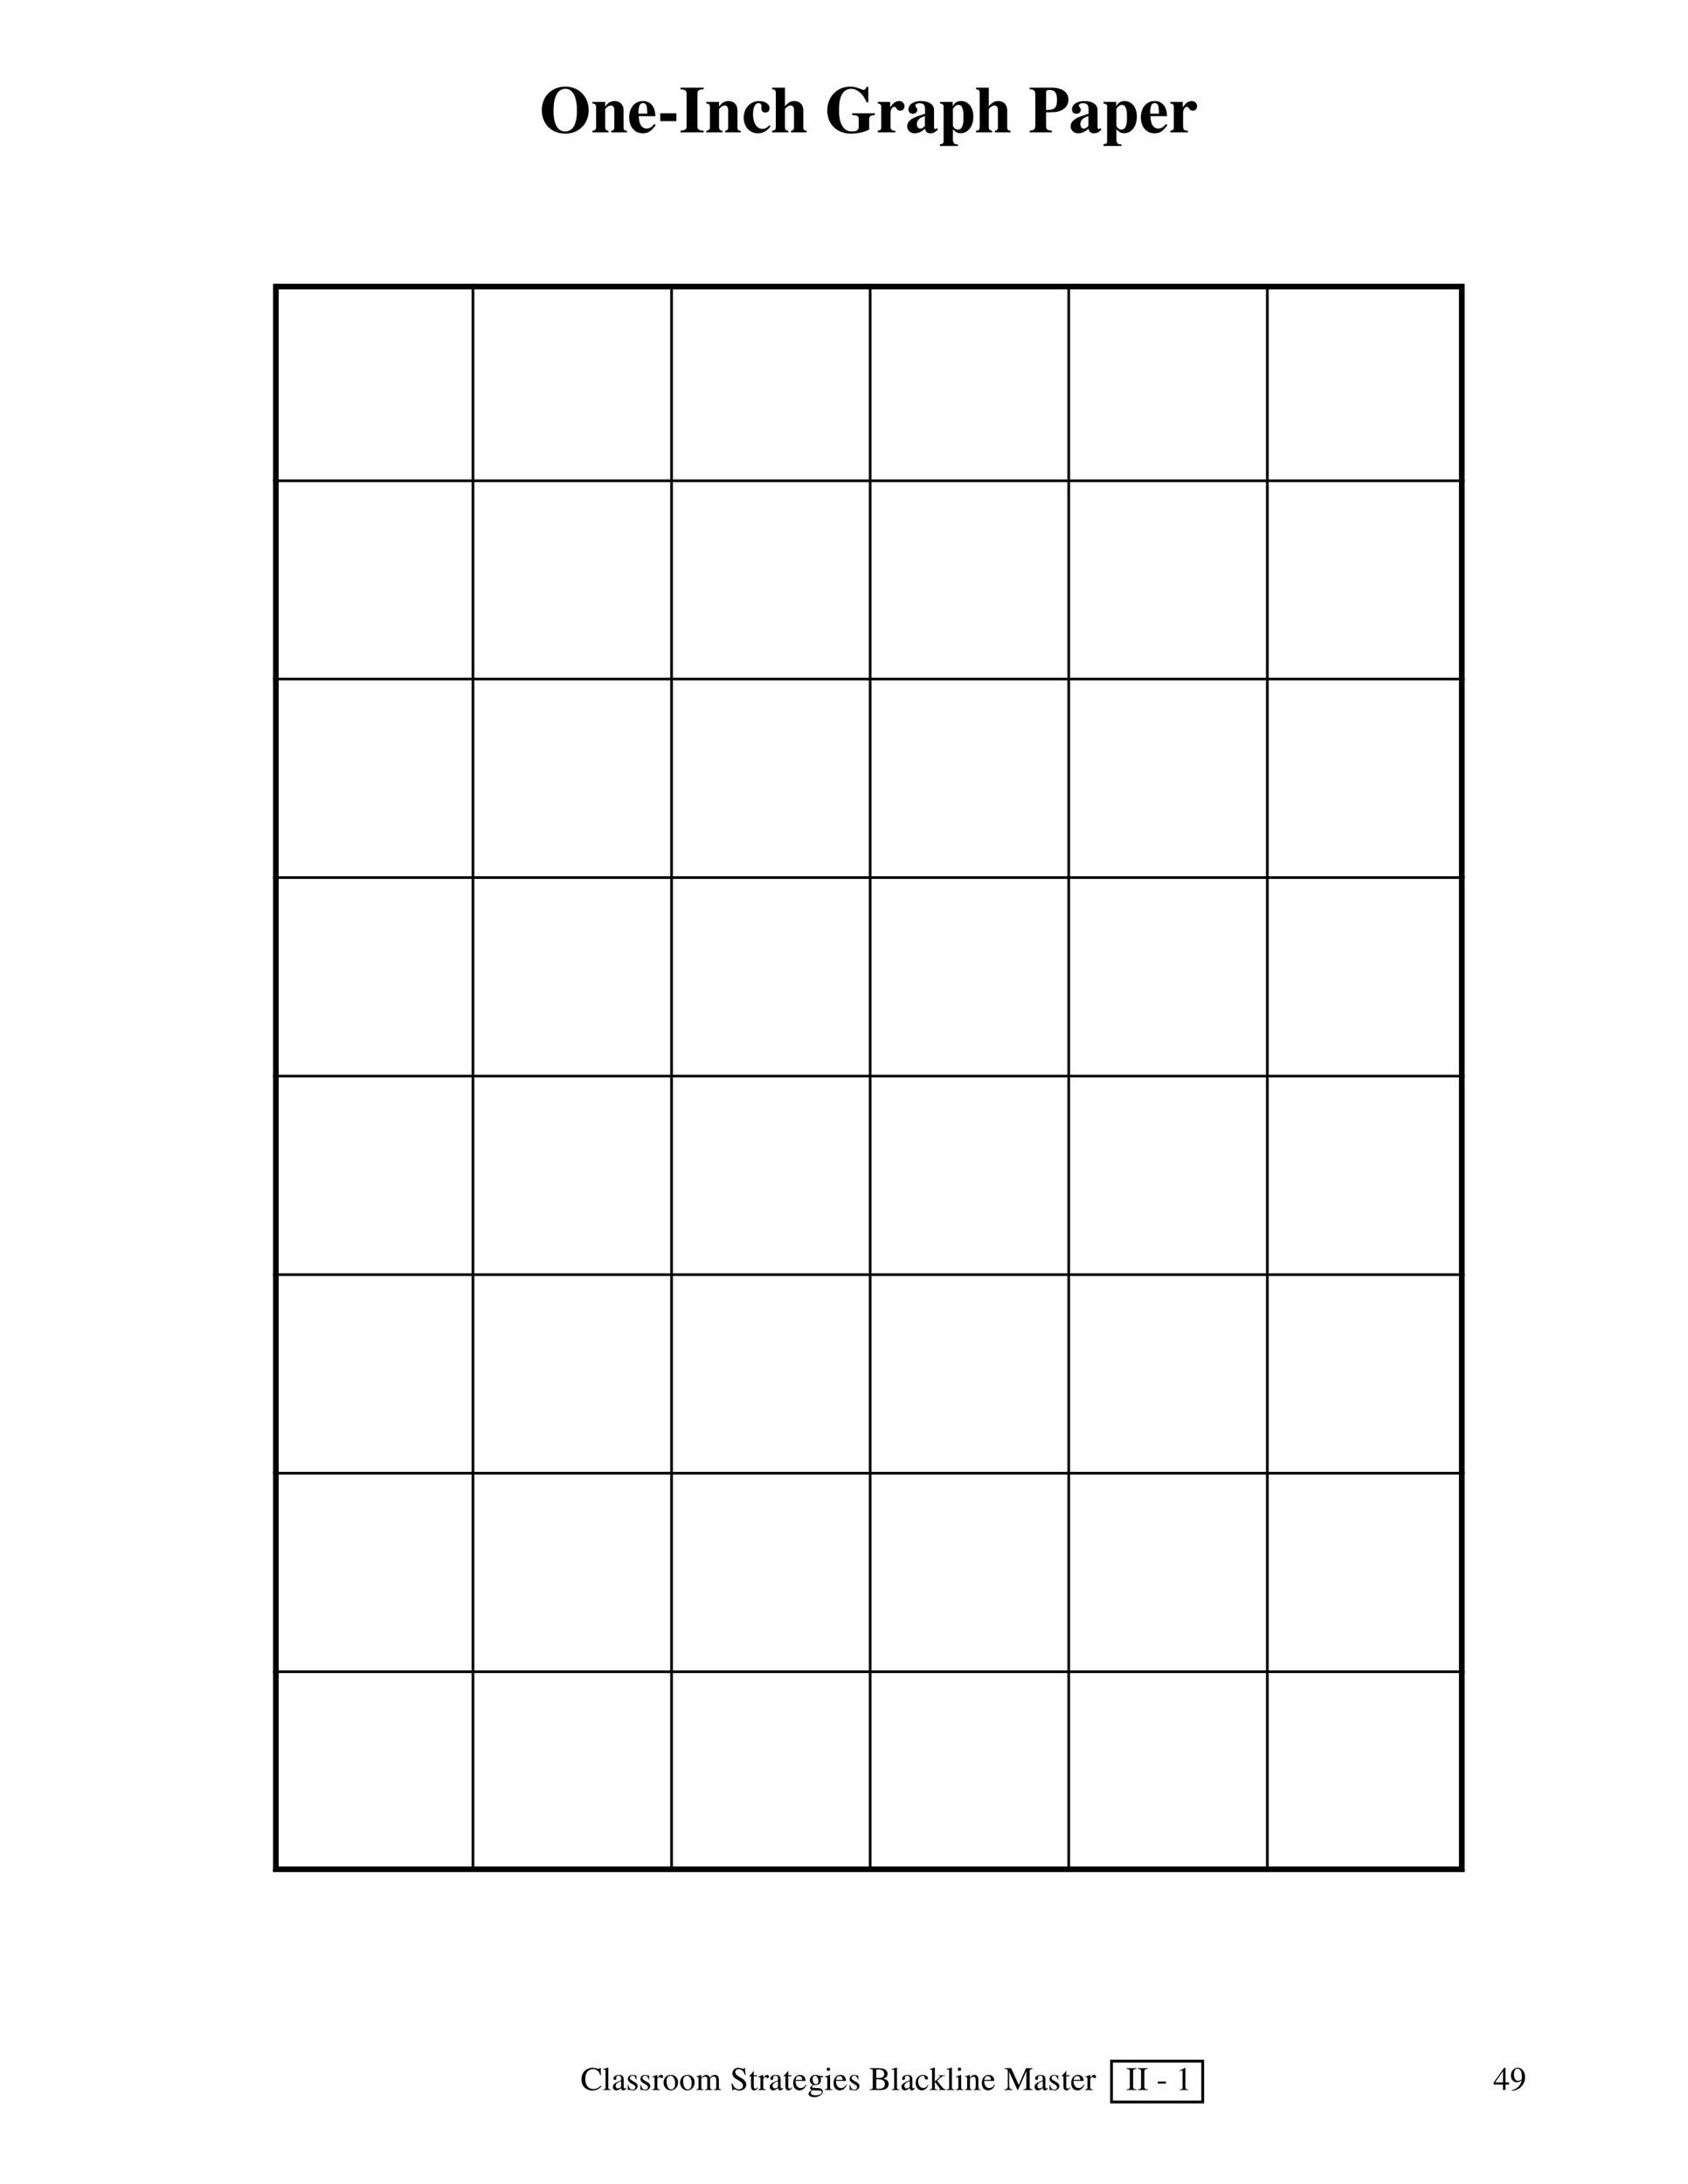 worksheet Cartesian Graph Paper photo graphing paper printable template images 30 free graph templates word pdf lab 10